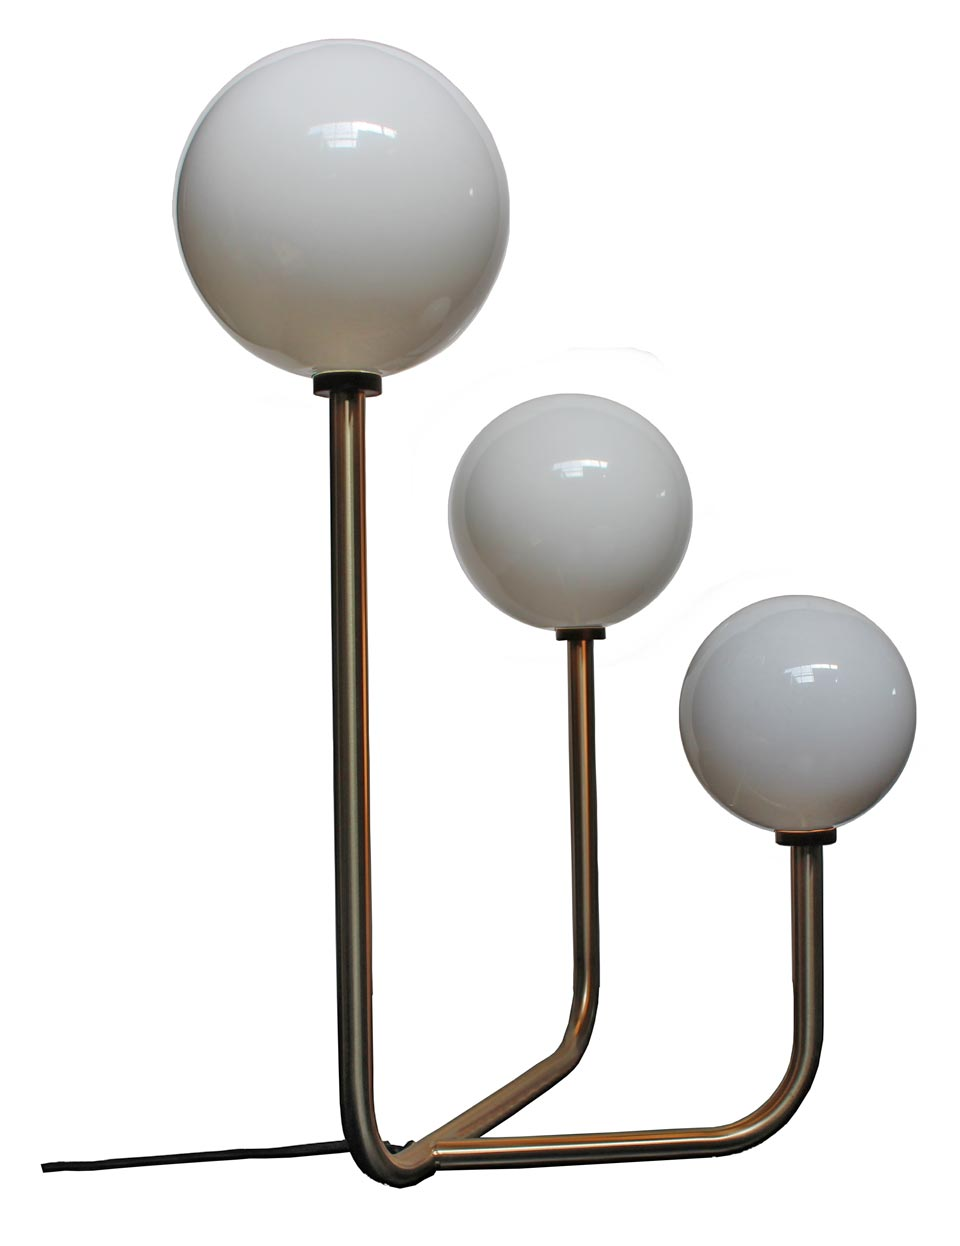 Contemporary Table Lamp Art Deco Inspiration Opal Glass Bubbles Brushed Brass Stand